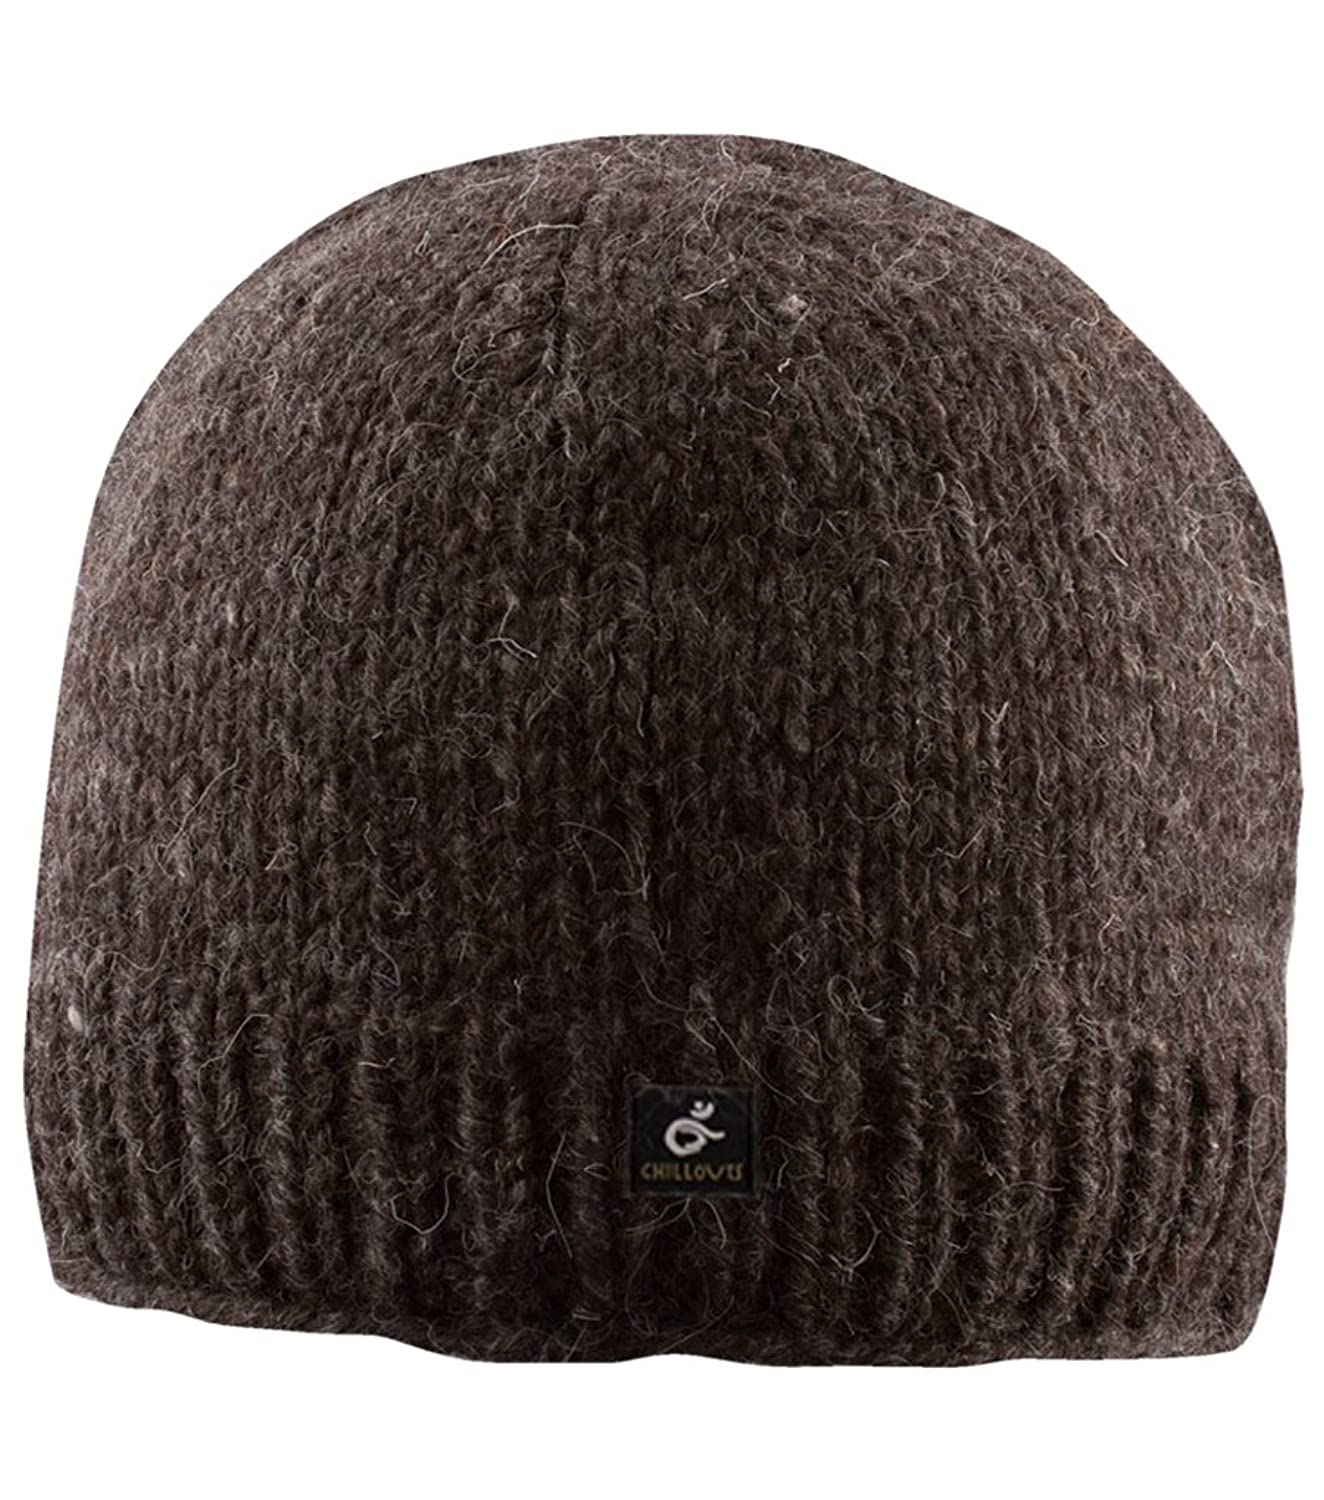 CHILLOUTS - MAT HAT - MAT 03 - LIGHT GREY